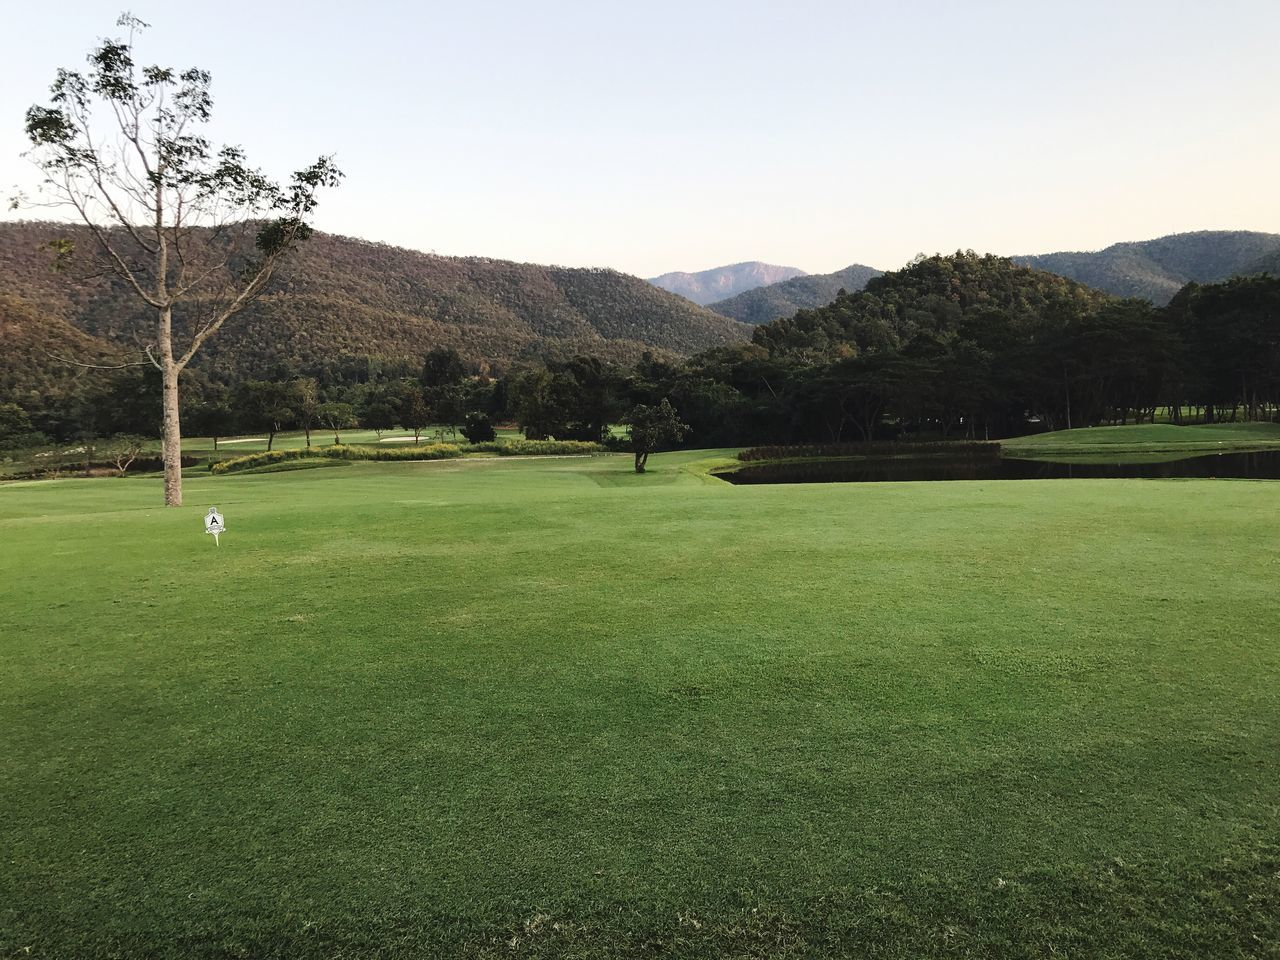 golf, golf course, green - golf course, tree, grass, green color, sport, scenics, beauty in nature, nature, golf club, leisure activity, putting green, golfer, day, outdoors, mountain, taking a shot - sport, tranquility, clear sky, sky, tee, sportsman